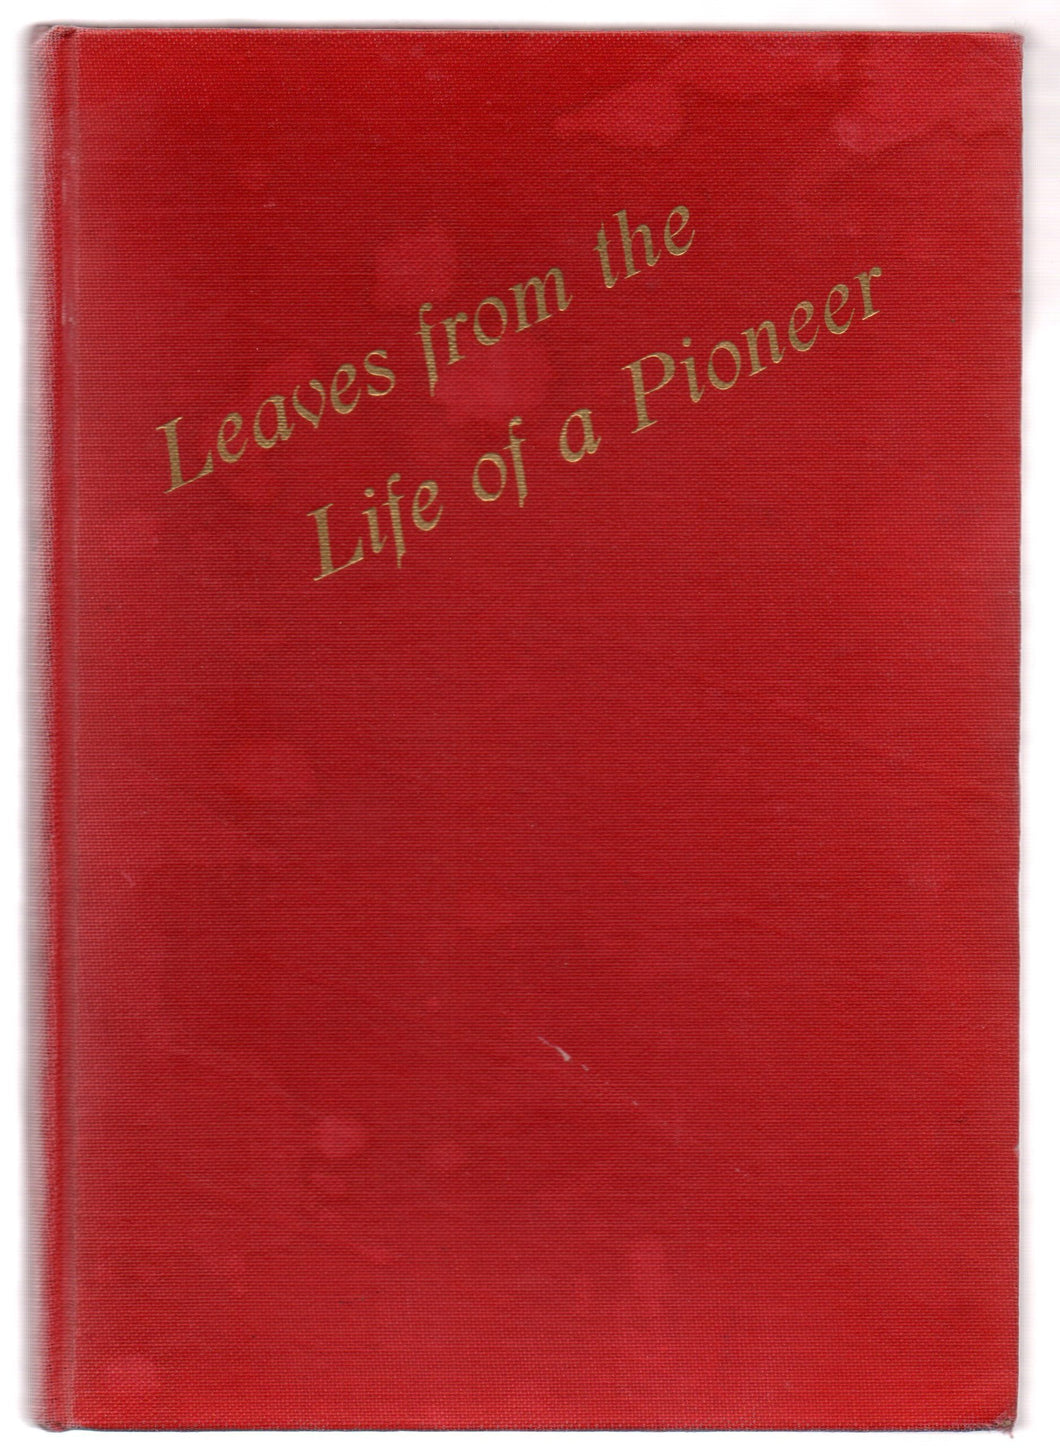 Leaves From The Life of a Pioneer: Being the Autobiography of Sometime Senator Emil Julius Meilicke